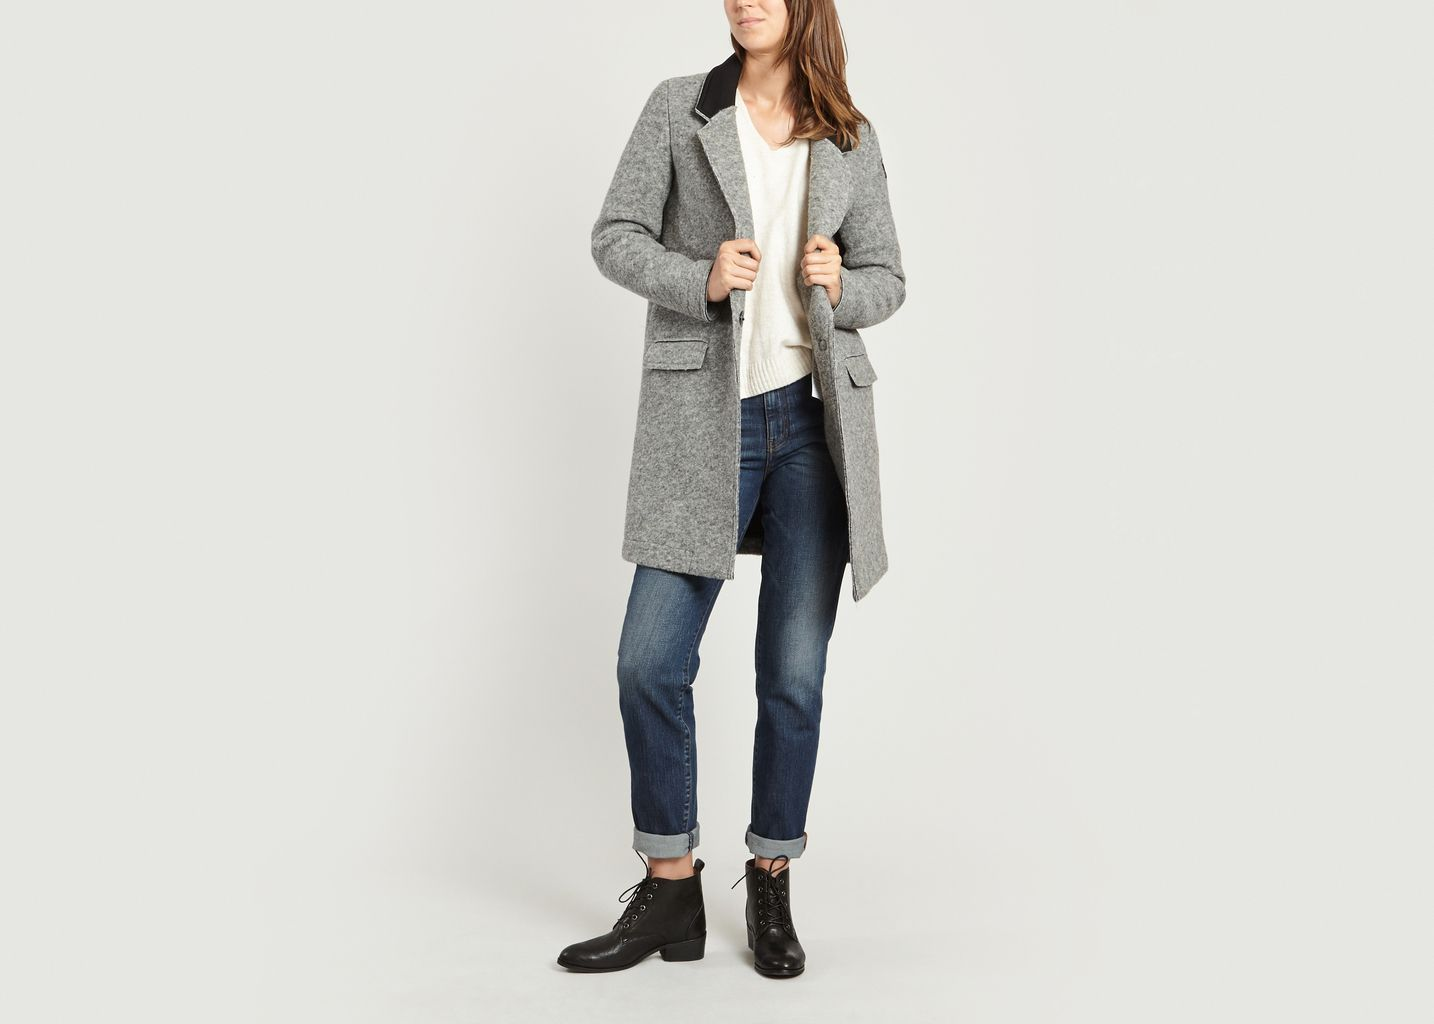 Manteau Gris Ebba Gertrude L'exception Gaston qnPwrSfq6